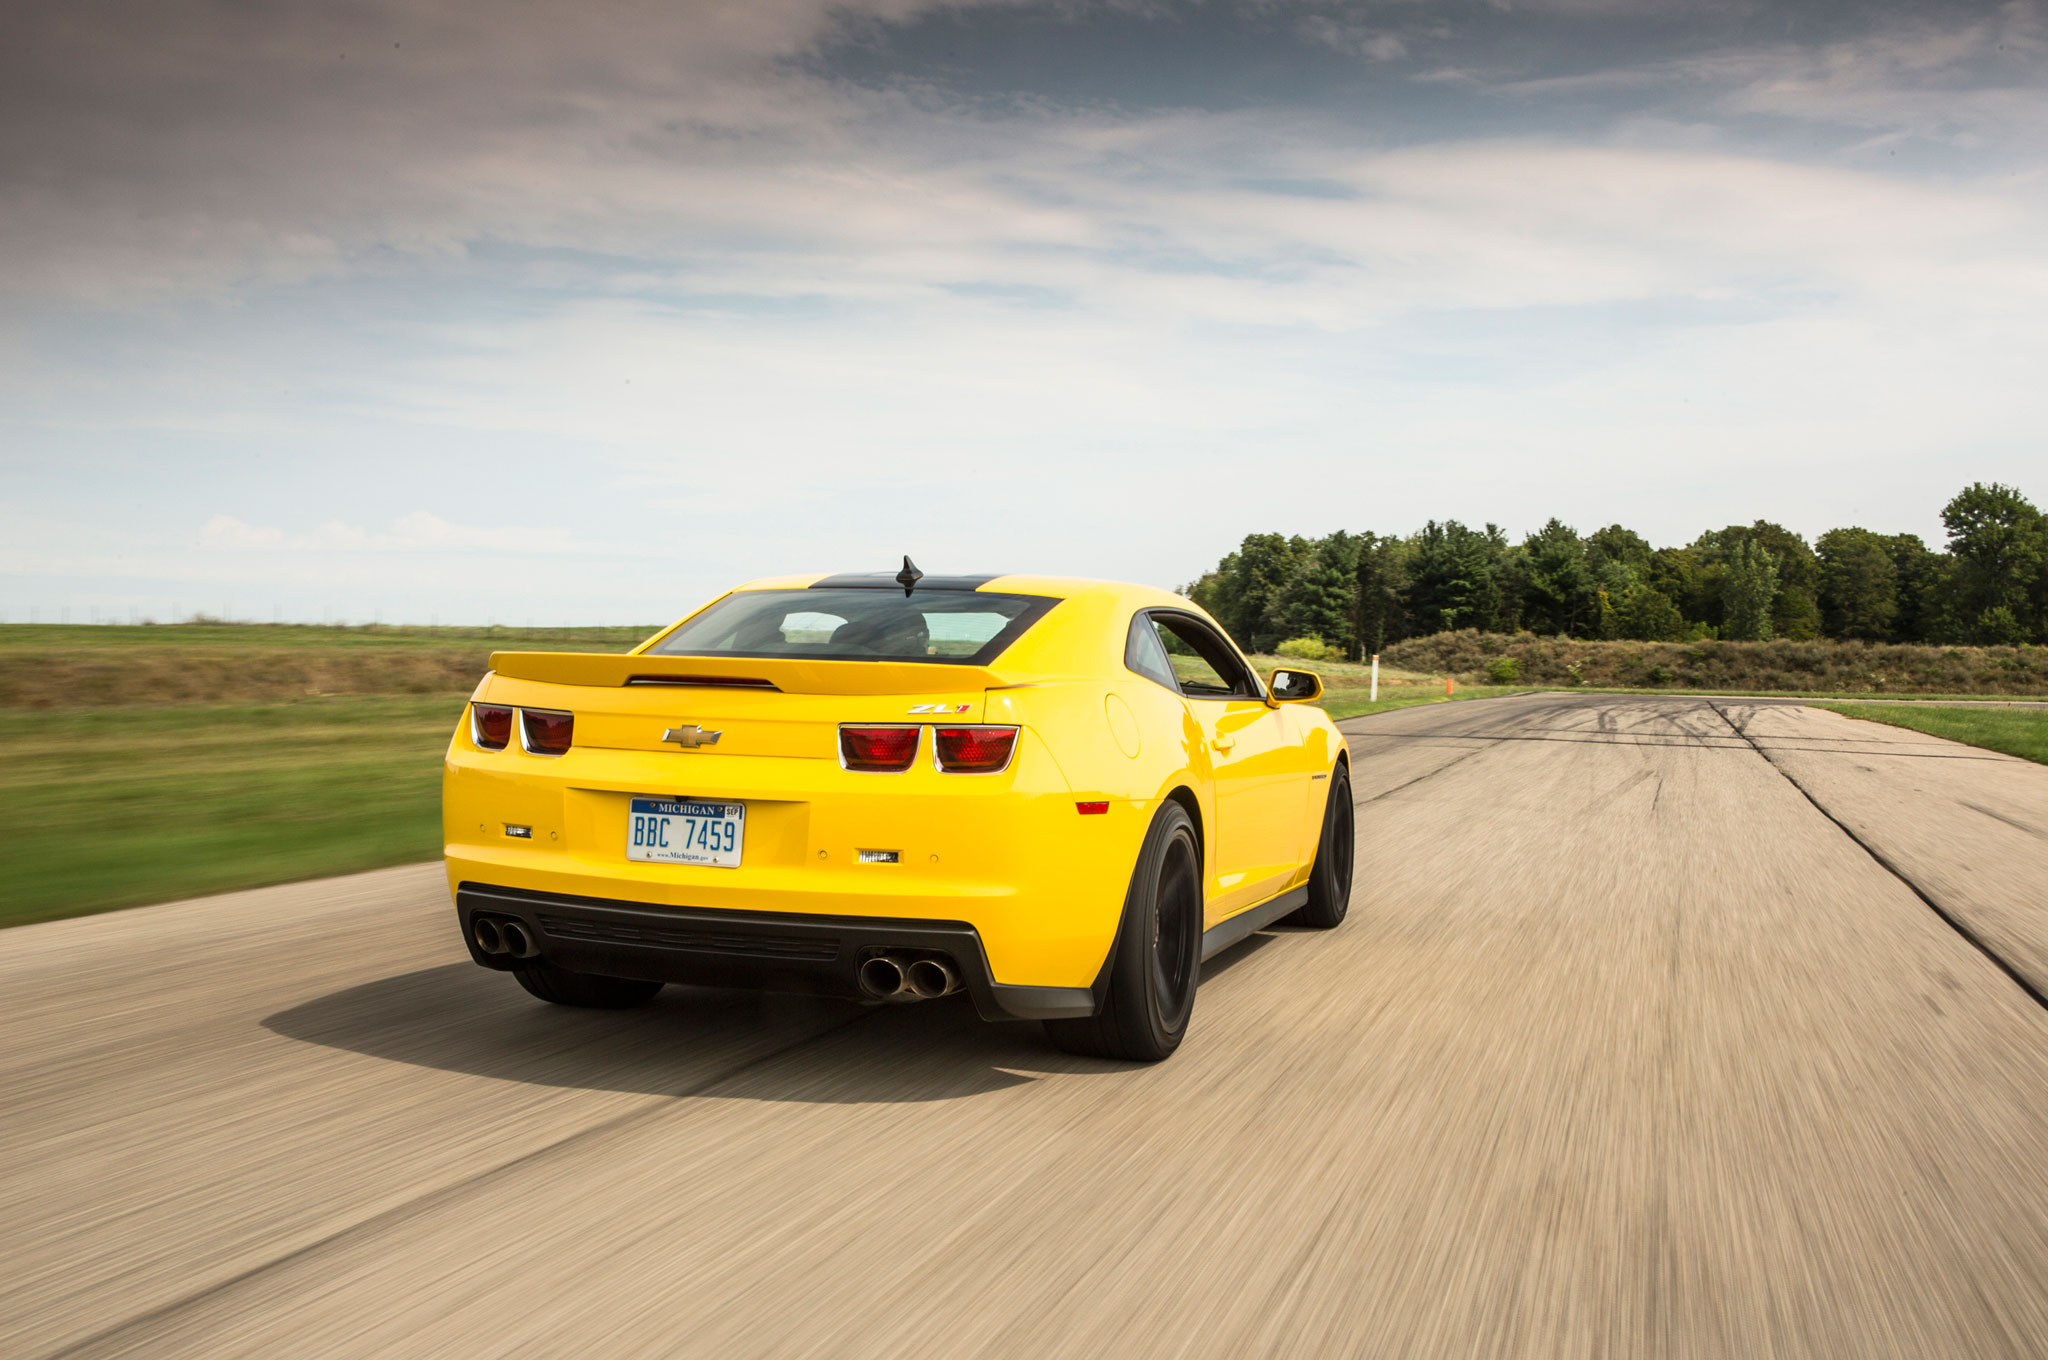 transformers 4 bumblebee becomes a 1967 chevrolet camaro. Cars Review. Best American Auto & Cars Review